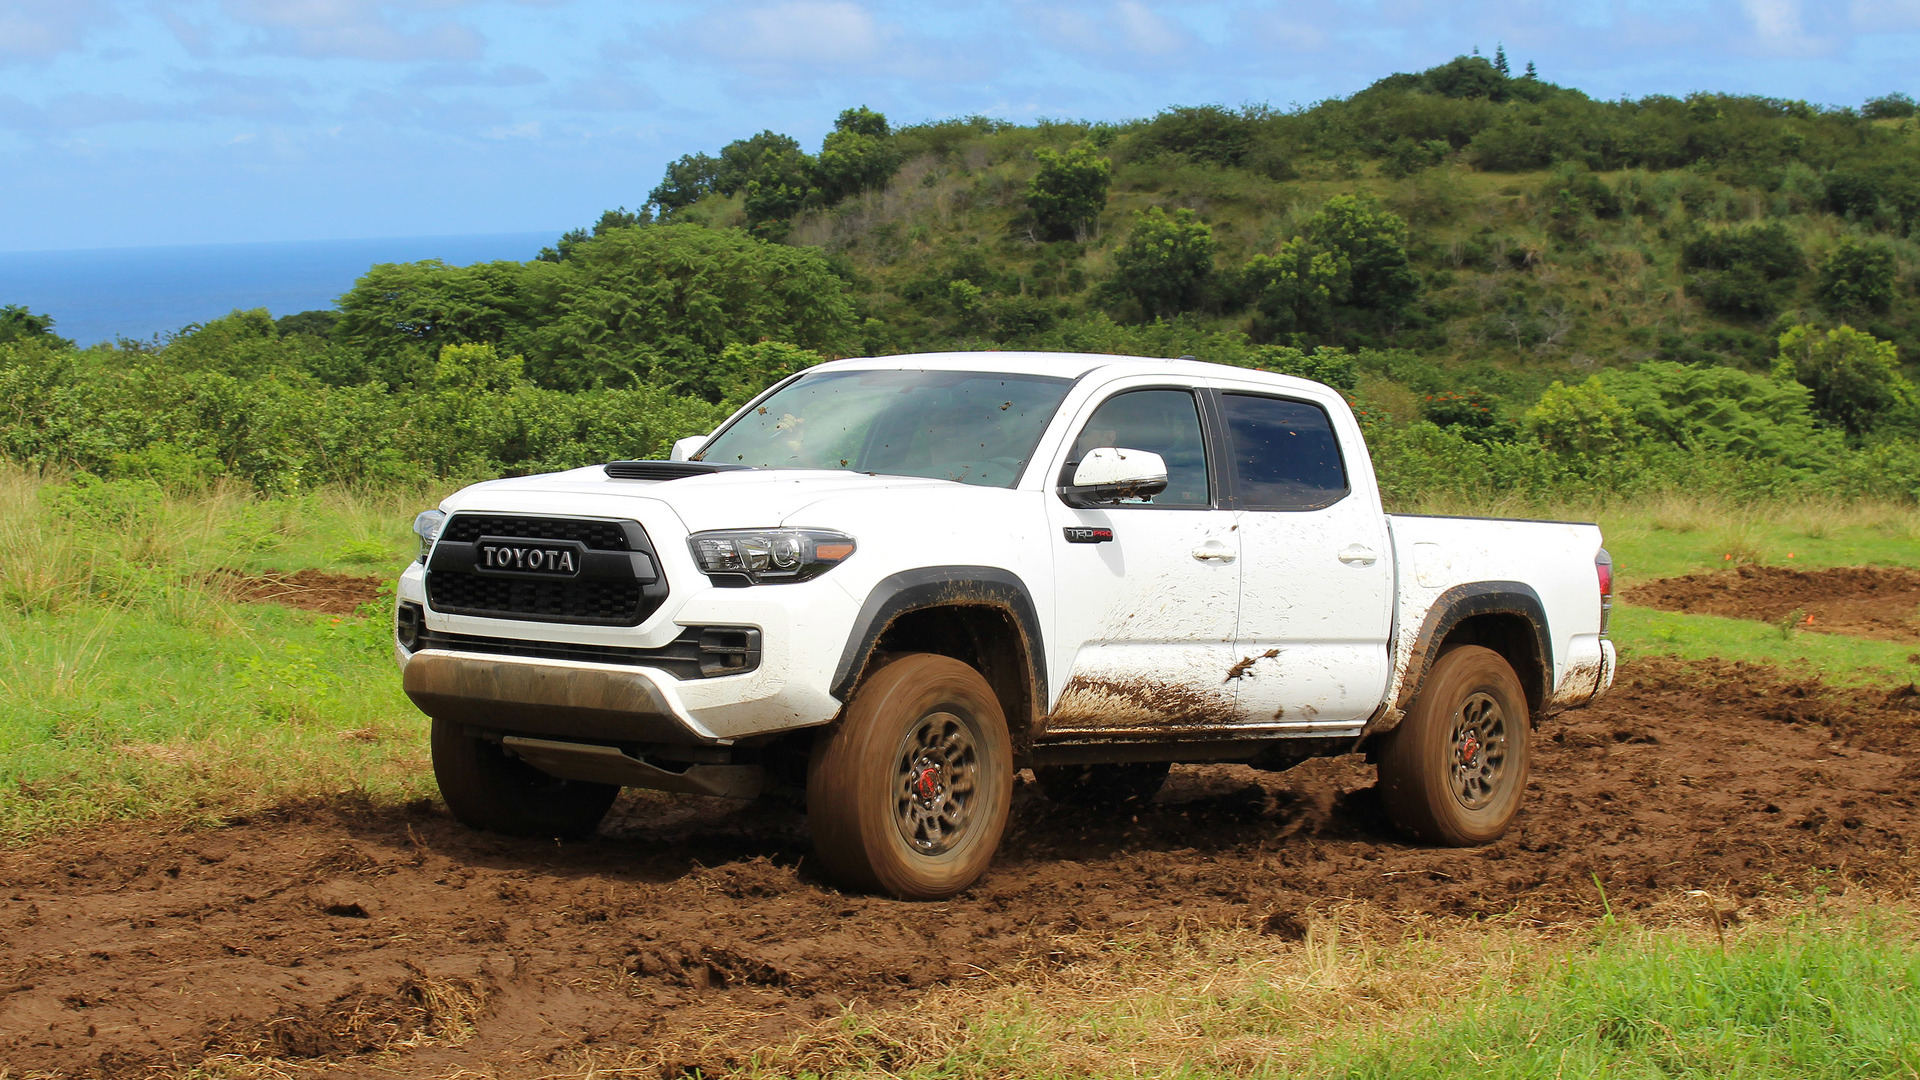 Toyota Tacoma Rack >> 2017 Toyota Tacoma TRD Pro First Drive: No pavement, no problem